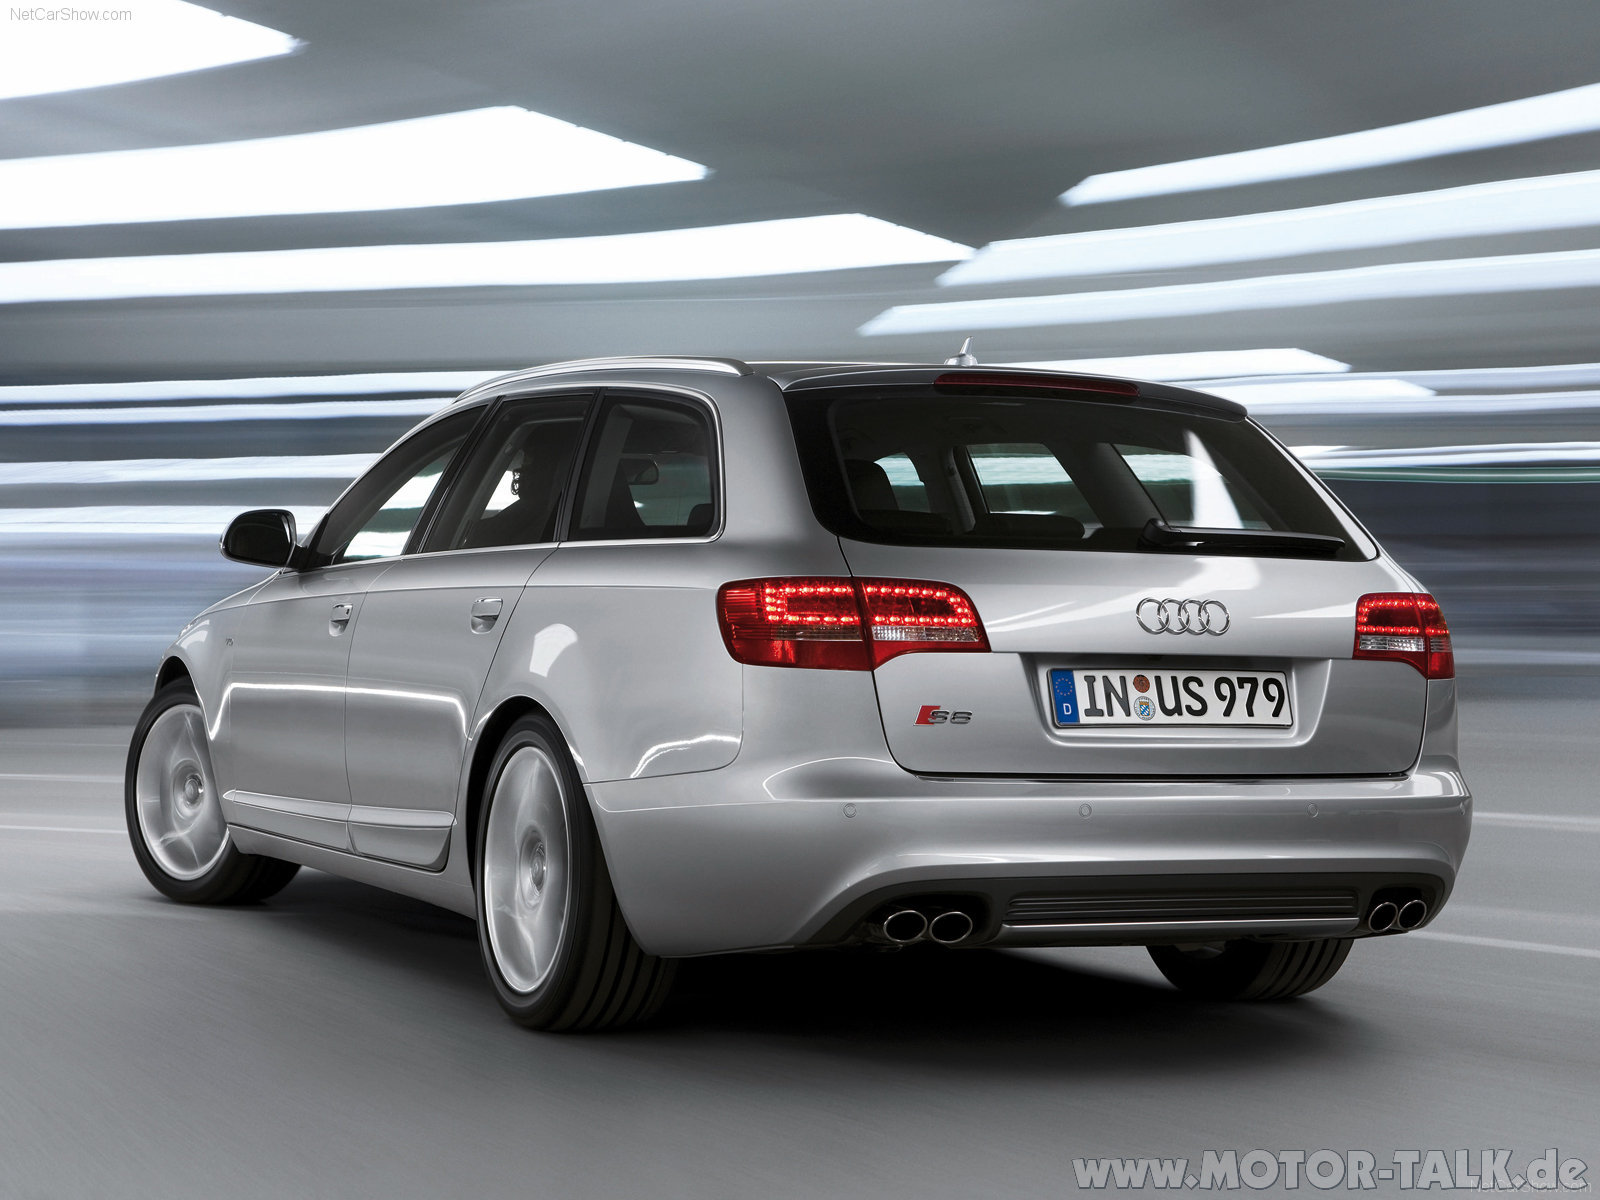 audi s6 avant 4f c6 5 2 fsi v10 435 hp quattro tiptronic. Black Bedroom Furniture Sets. Home Design Ideas